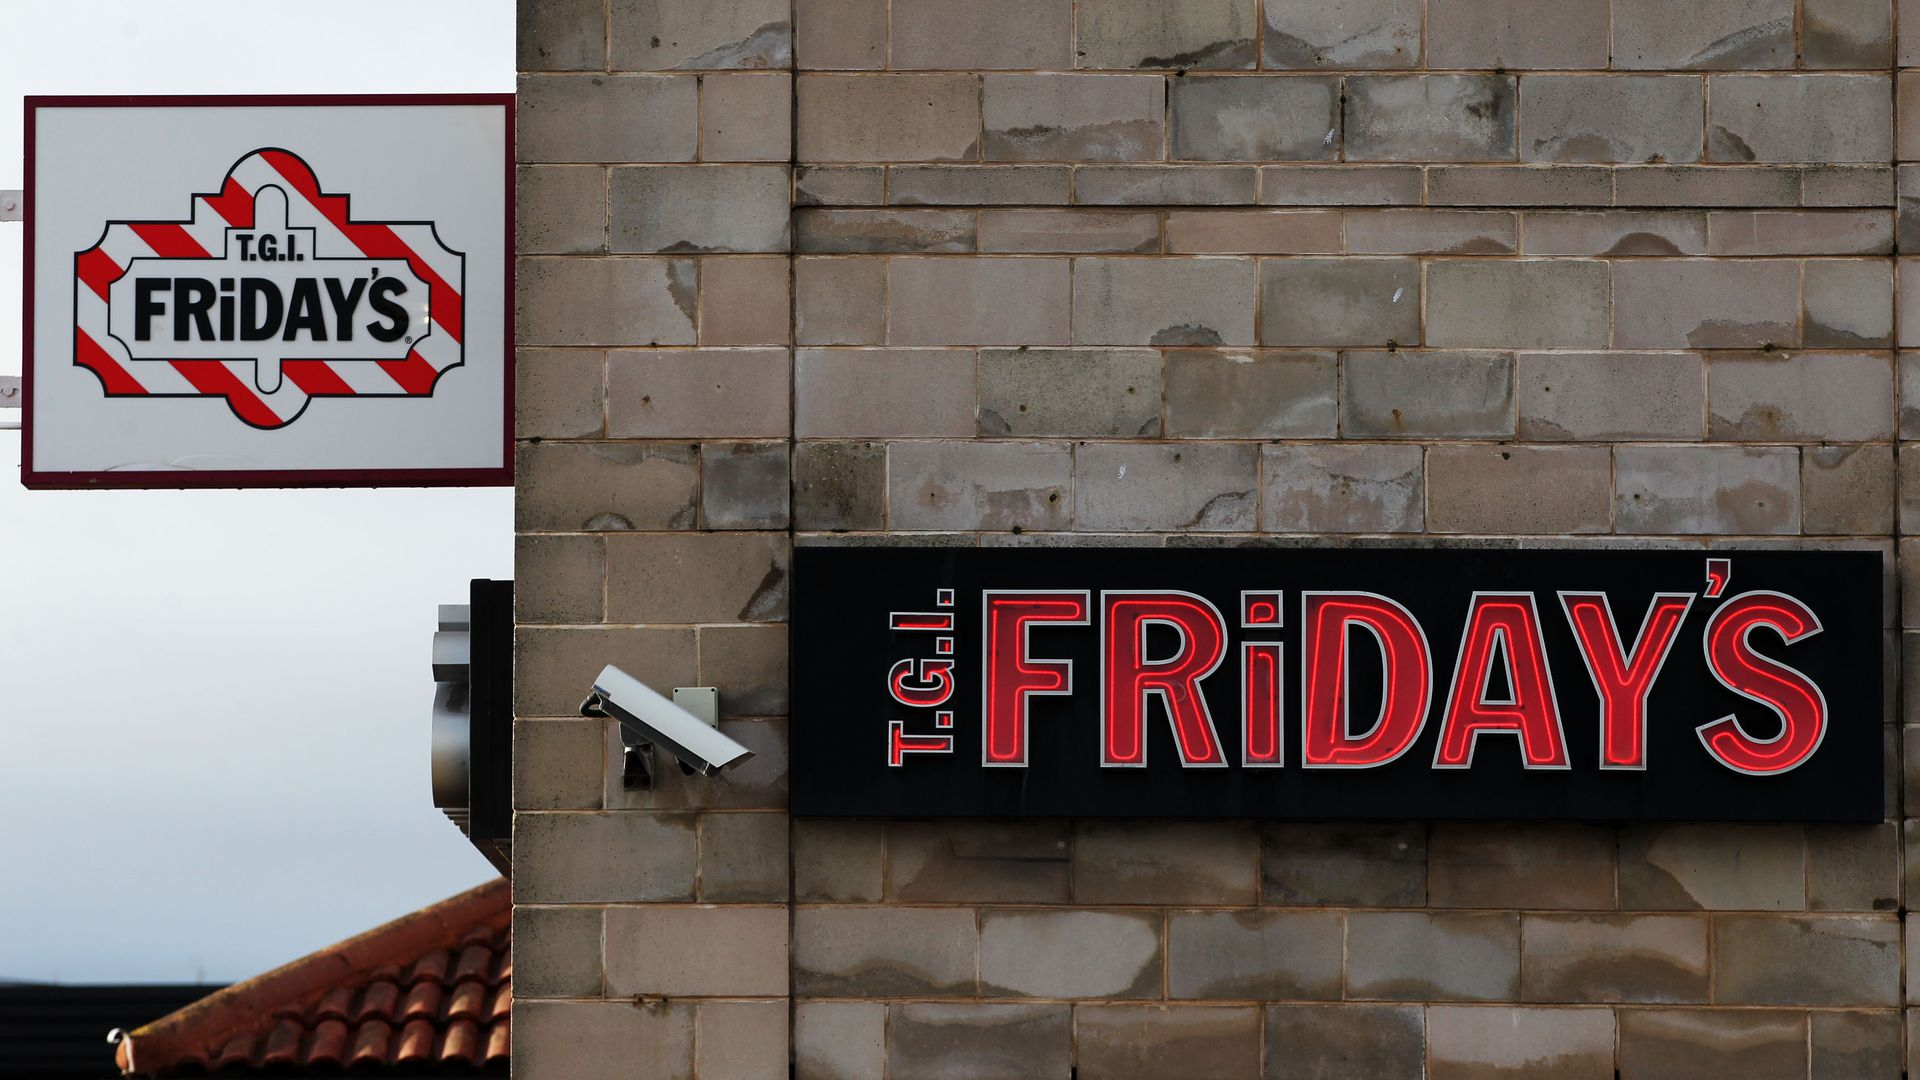 A surveillance camera next to a T.G.I. Friday's sign